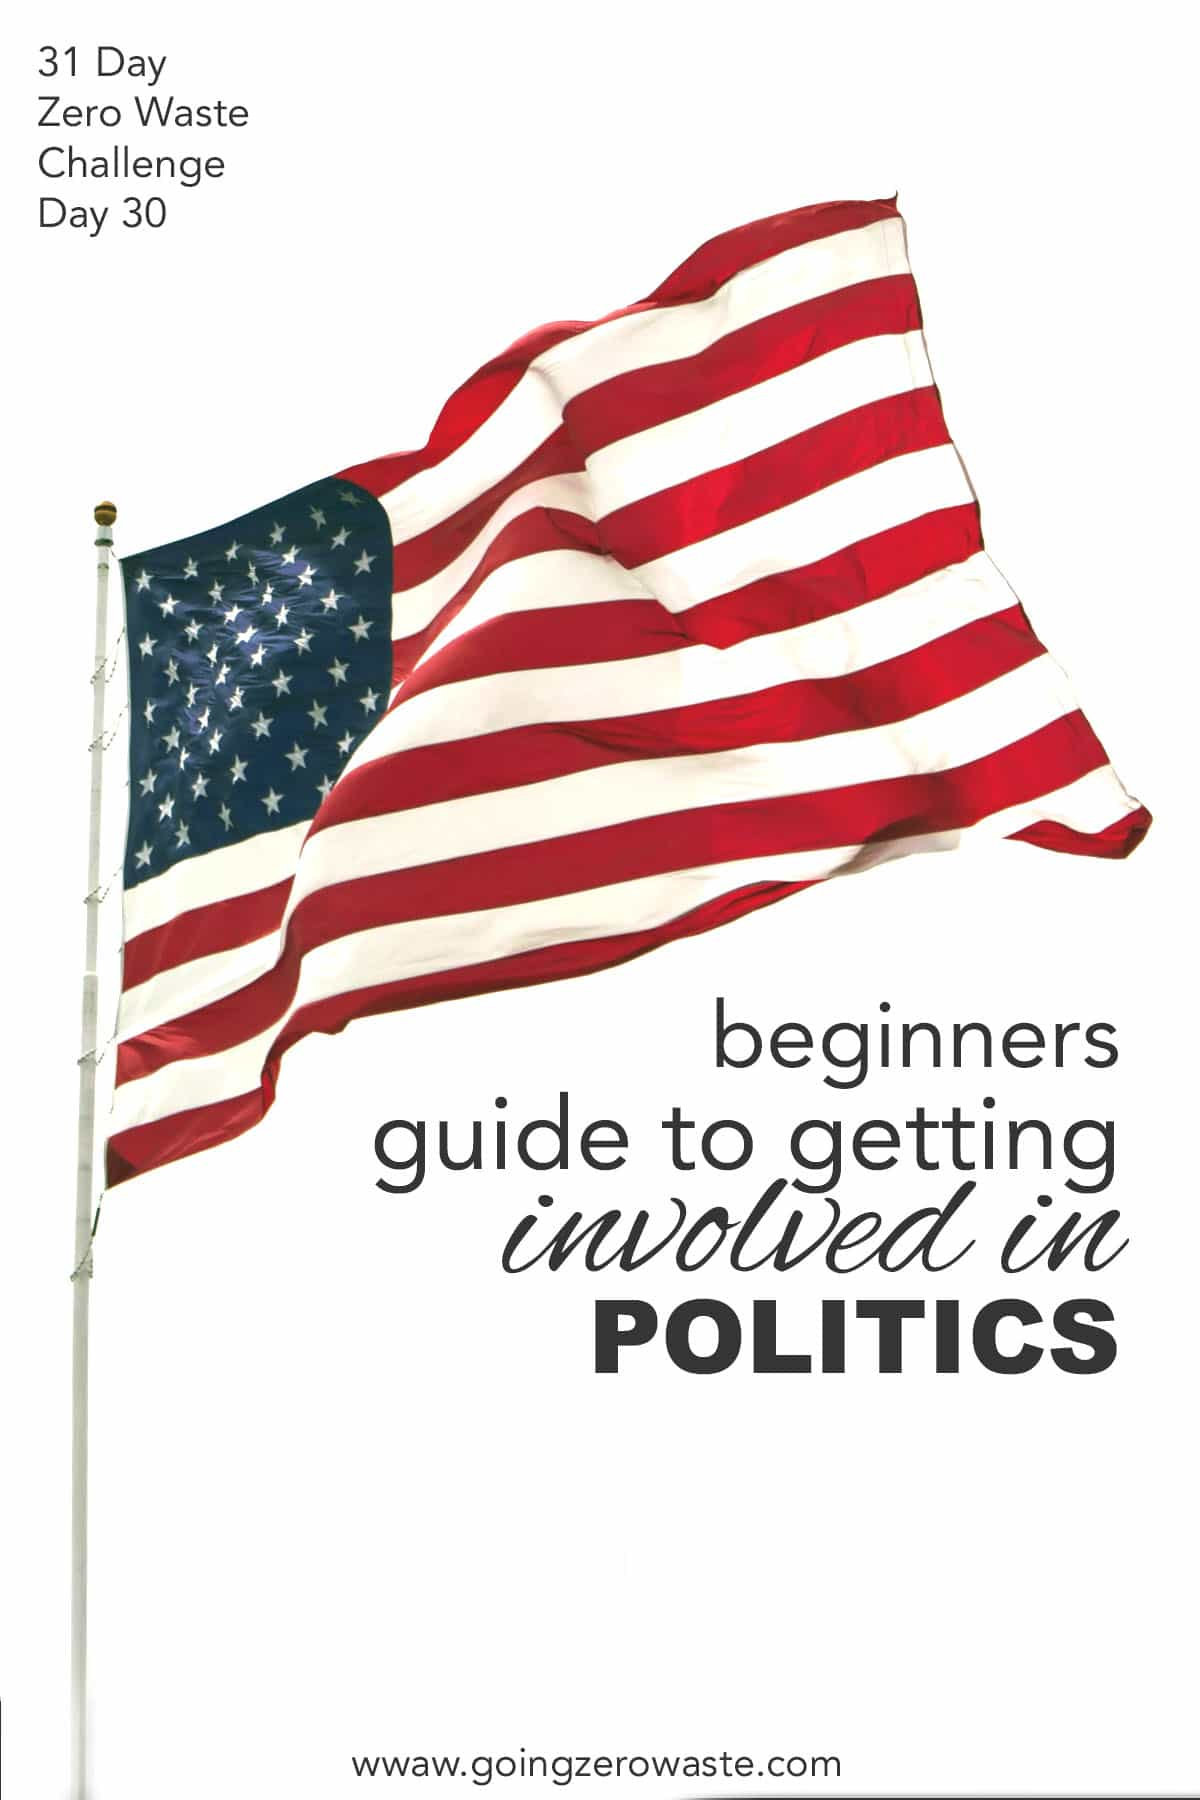 Beginners Guide to Getting Politically Involved - Day 30 of the Zero Waste Challenge